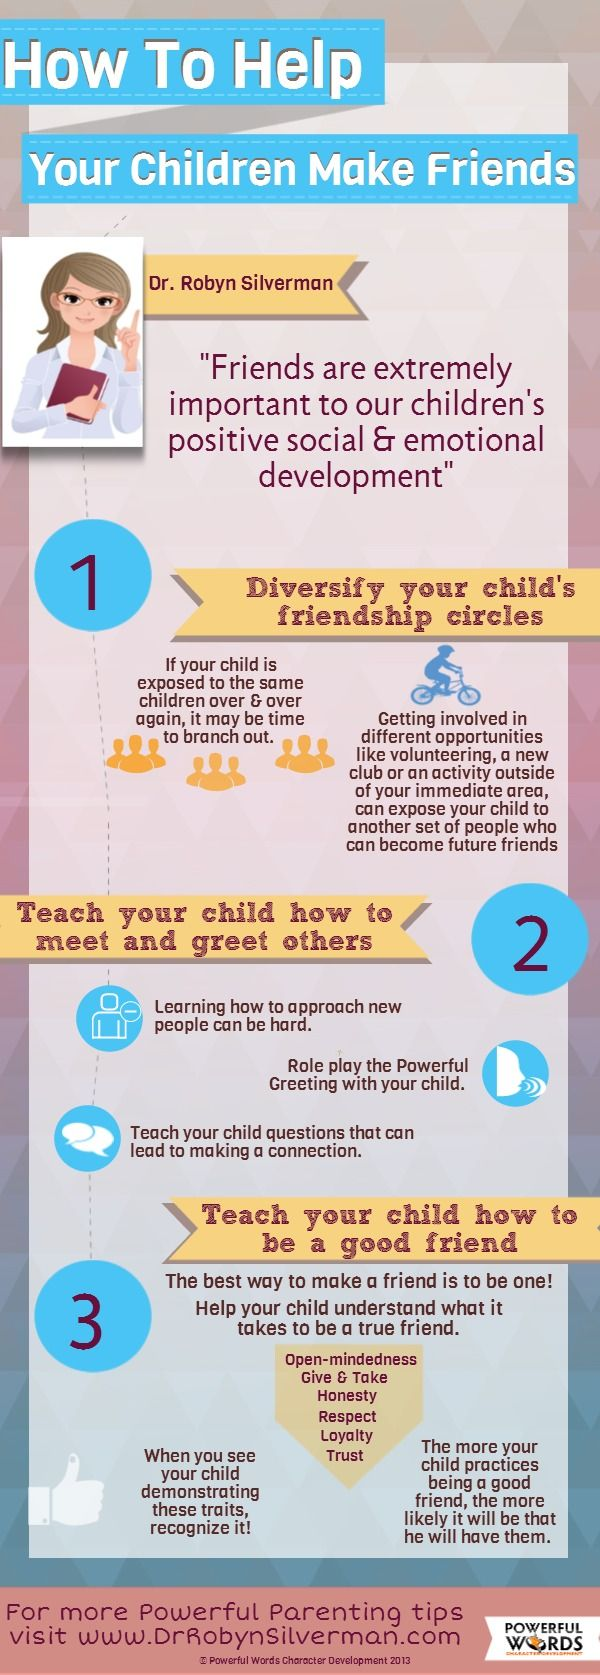 A great #Infographic for parents who need help teaching their children how to make or be good friends! #Friendship is the #PowerfulWord of month! http://www.drrobynsilverman.com/